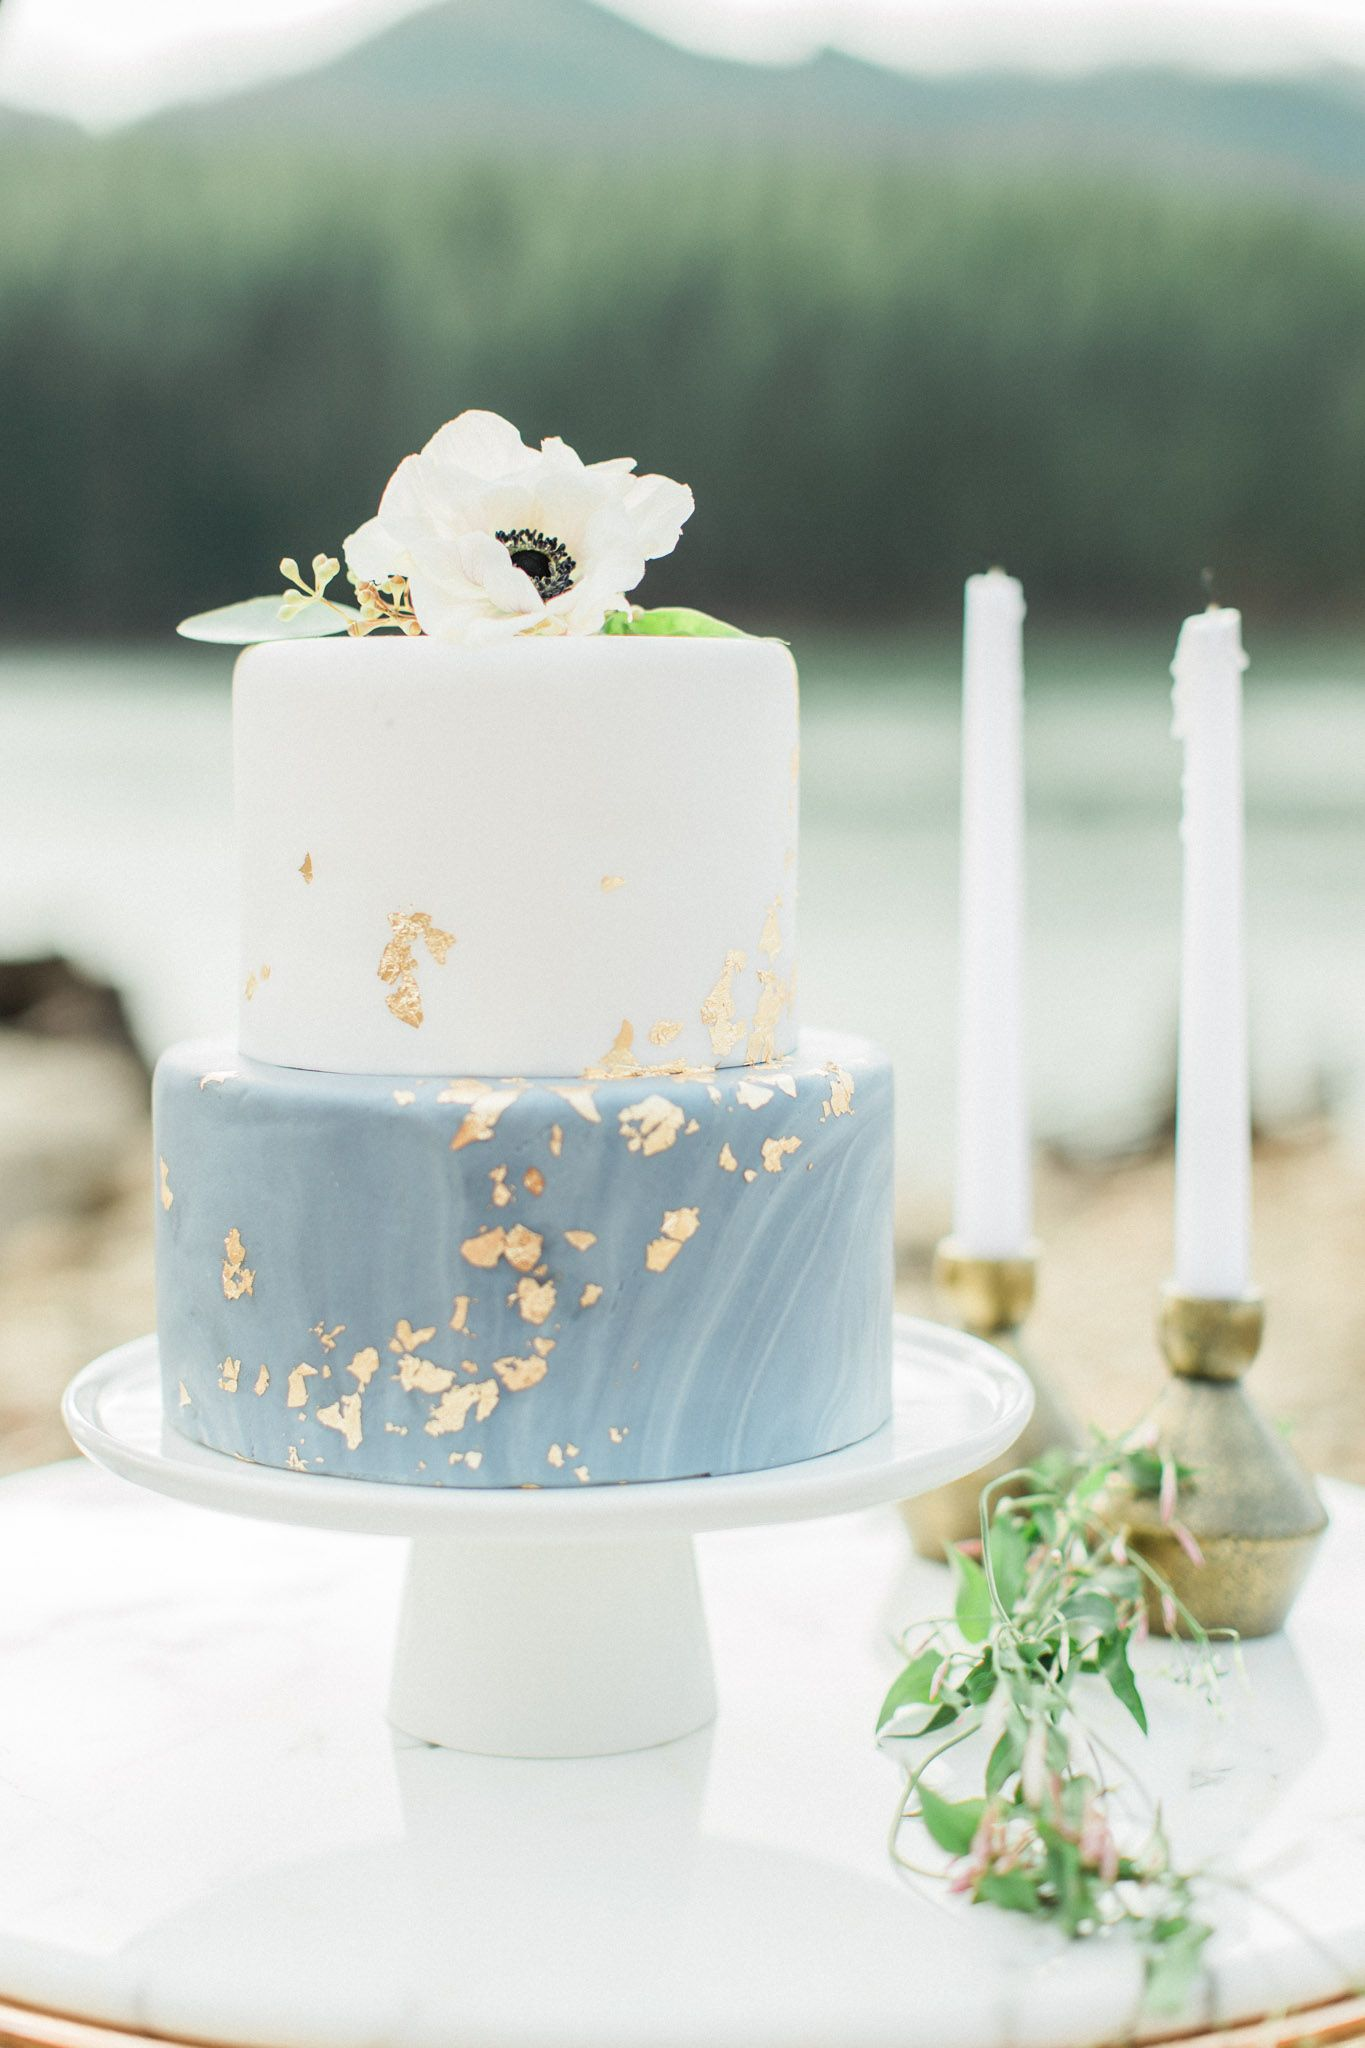 Two Tier Marble Dusty Light Blue Wedding Cake With Gold Foil Anenome Custom Cakes By Krys Light Blue Wedding Cake Simple Wedding Cake Wedding Cake Dusty Blue